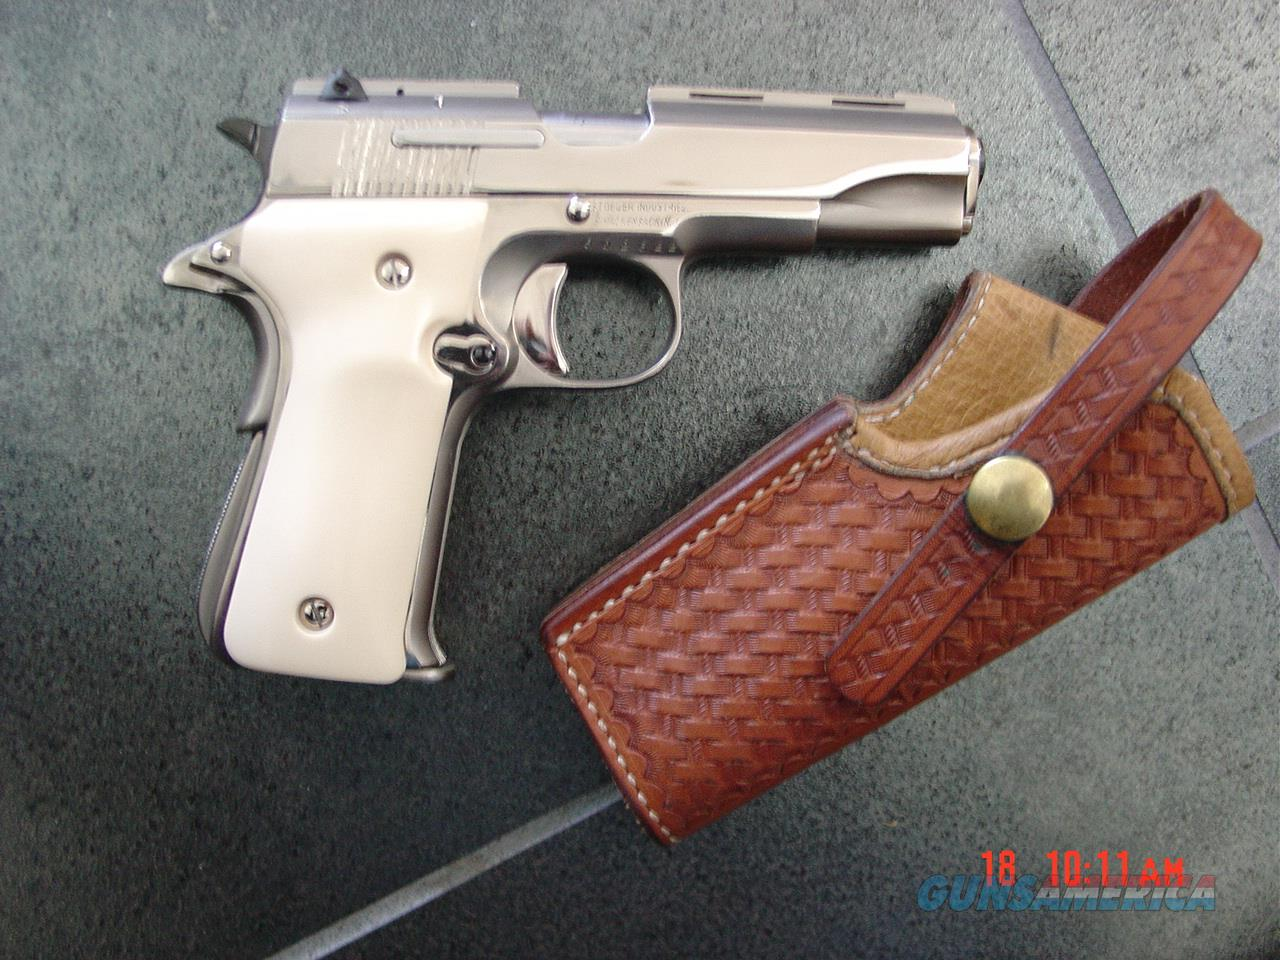 "Llama 380,3 1/2"" barrel, R1,mini 1911 style,made circa 1973,fully refinished in bright nickel,bonded ivory grips & leather holster,super nice !!  Guns > Pistols > Llama Pistols"